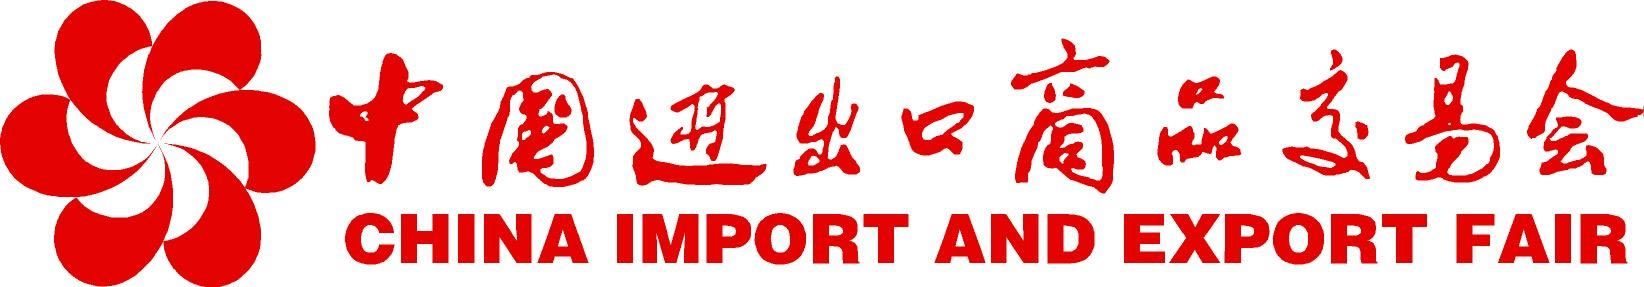 121st China Import and Export Fair is coming soon